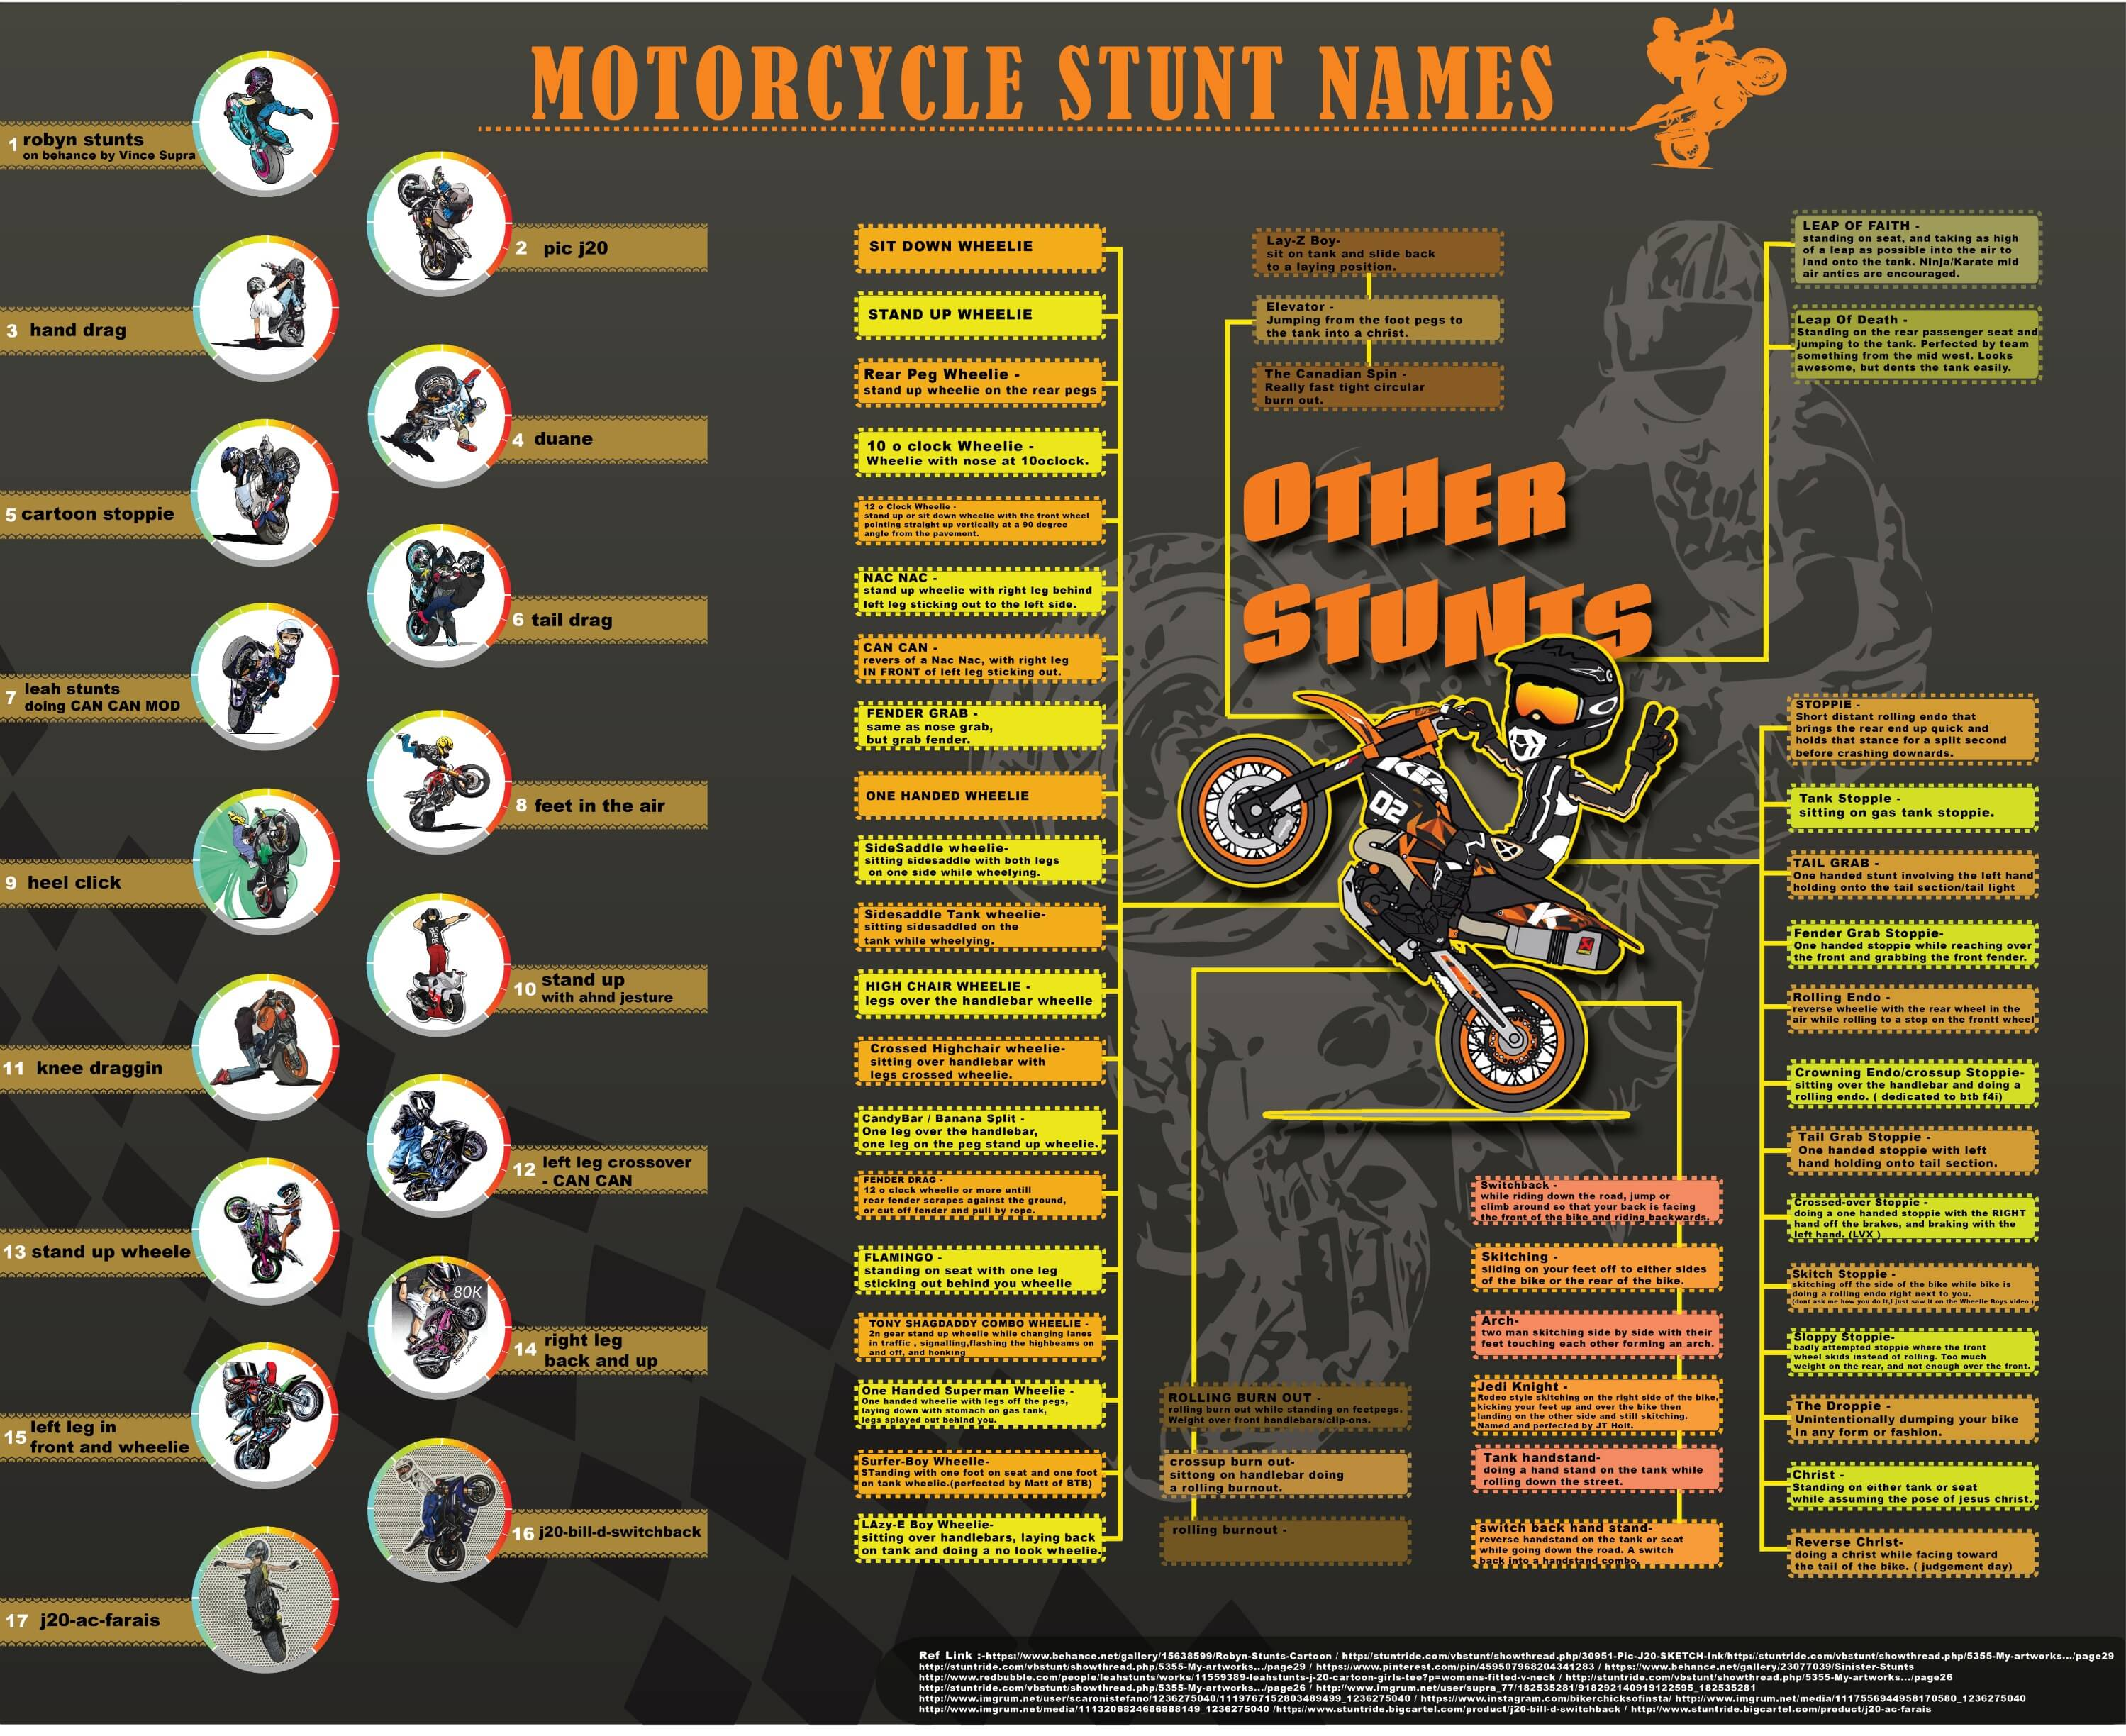 motocycle-stunt-names-infographic-large